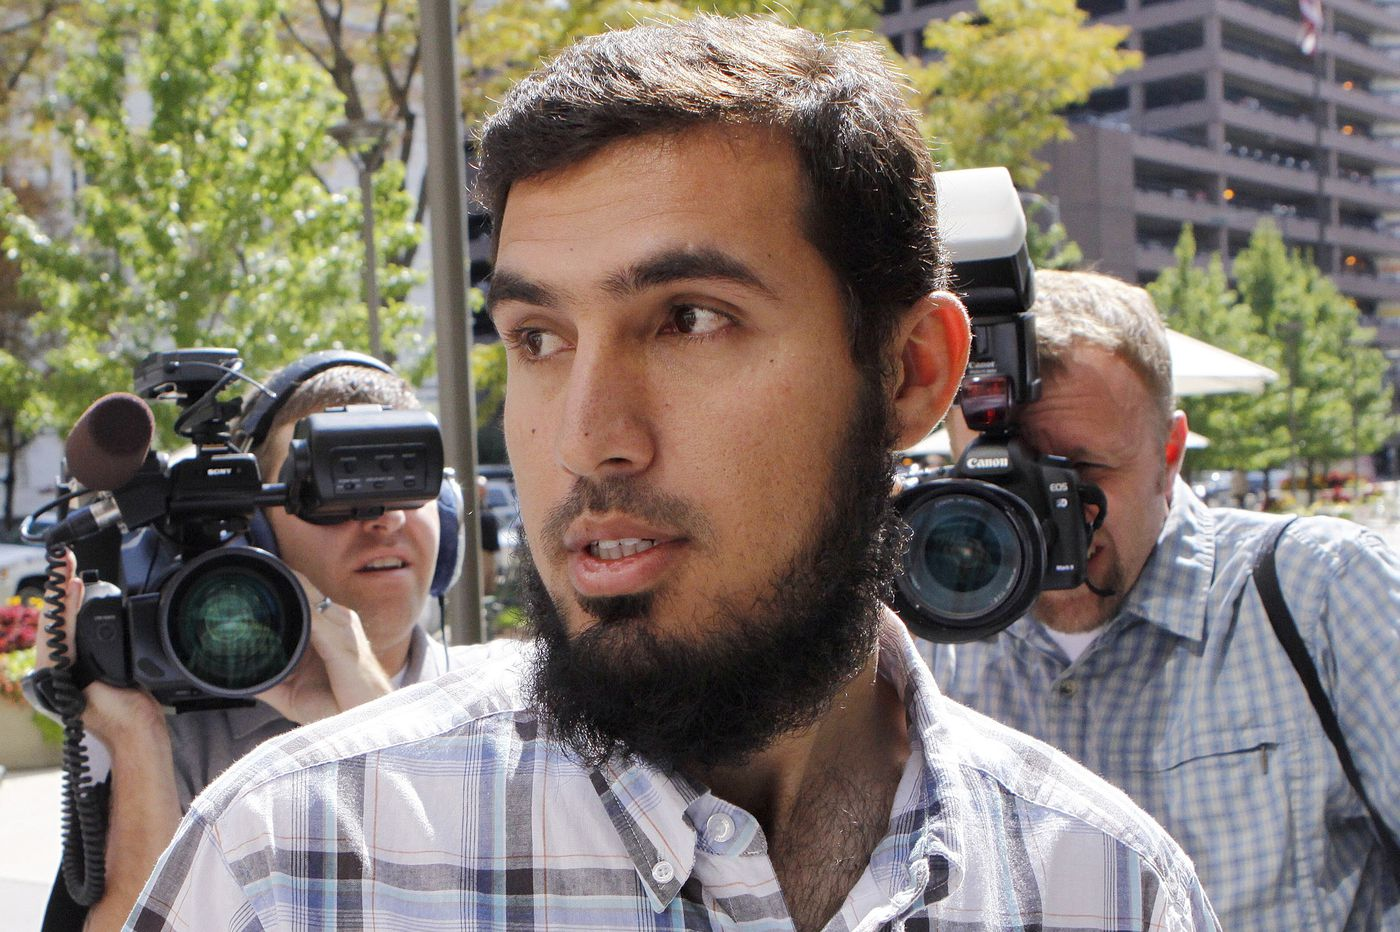 Would-be NYC bomber gets 10 years in foiled al-Qaeda plot